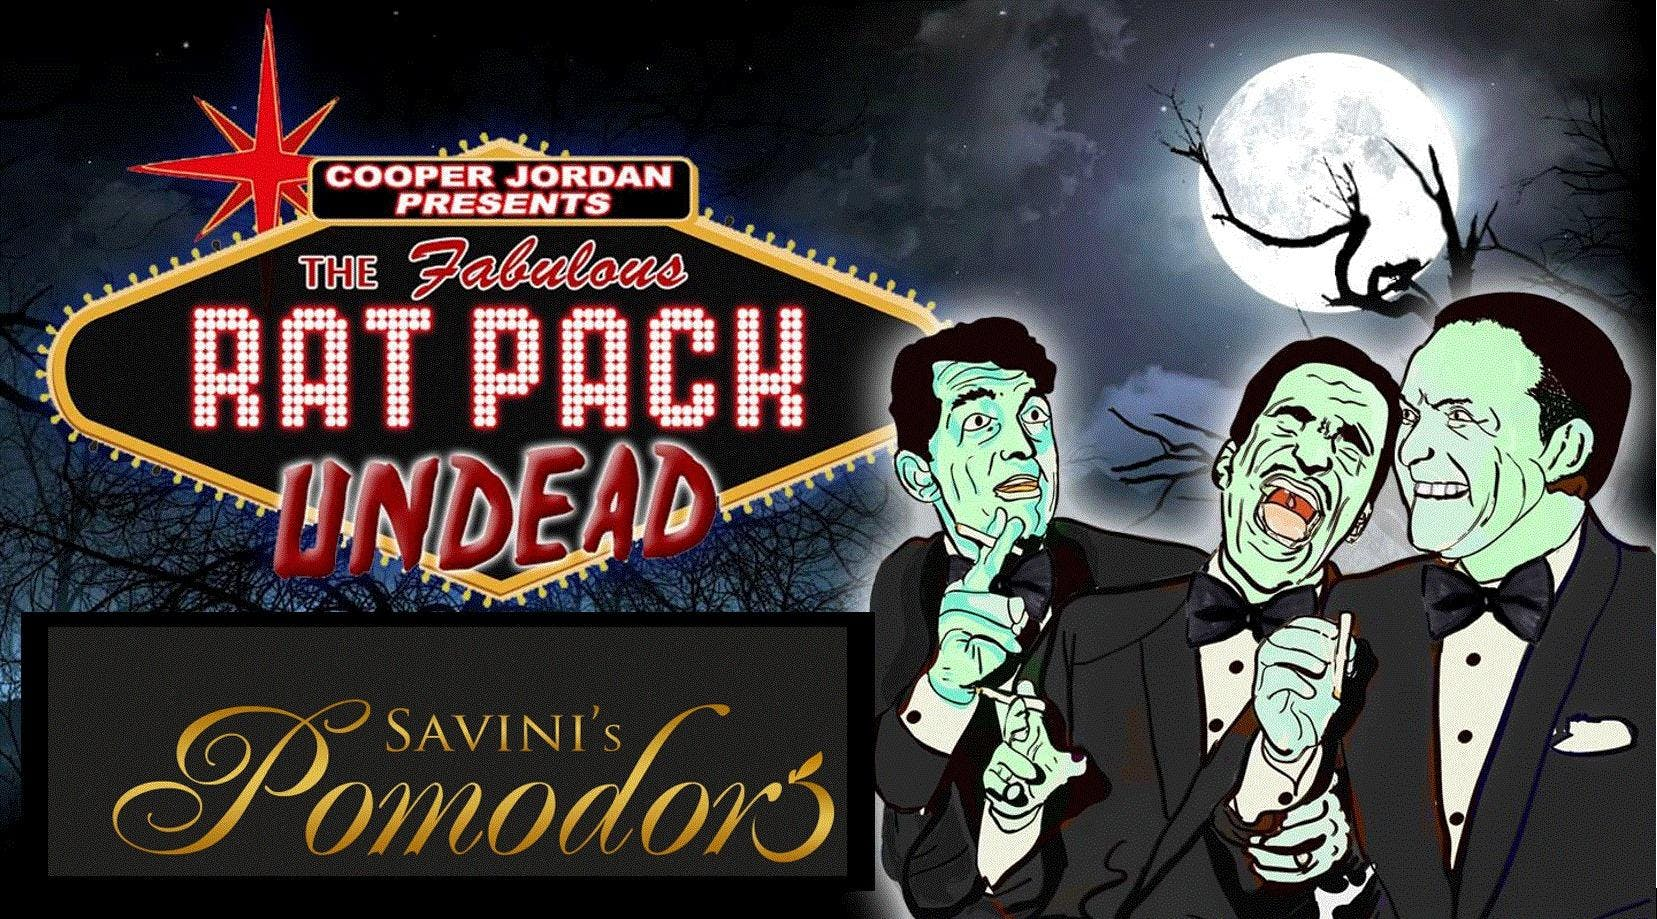 THE RAT PACK UNDEAD - Direct from NYC comes t